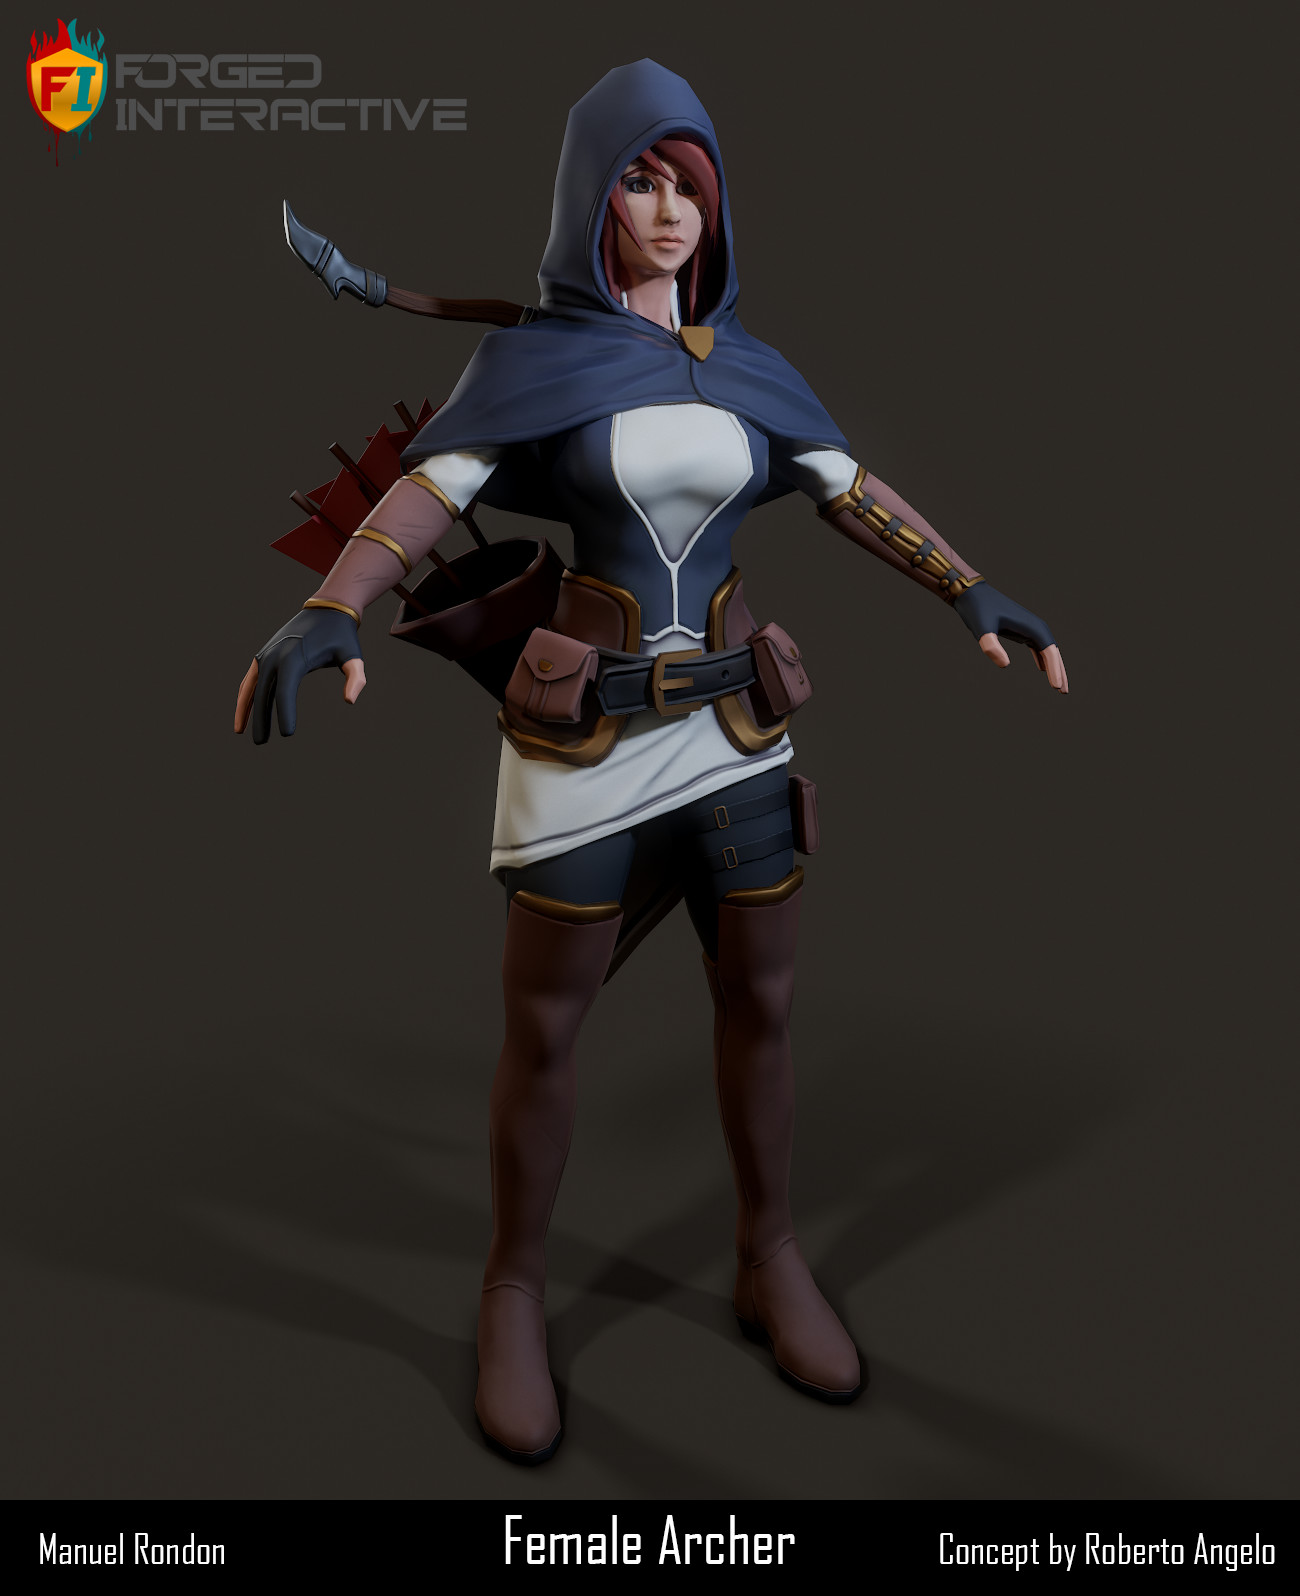 Female Archer (Forged Interactive)